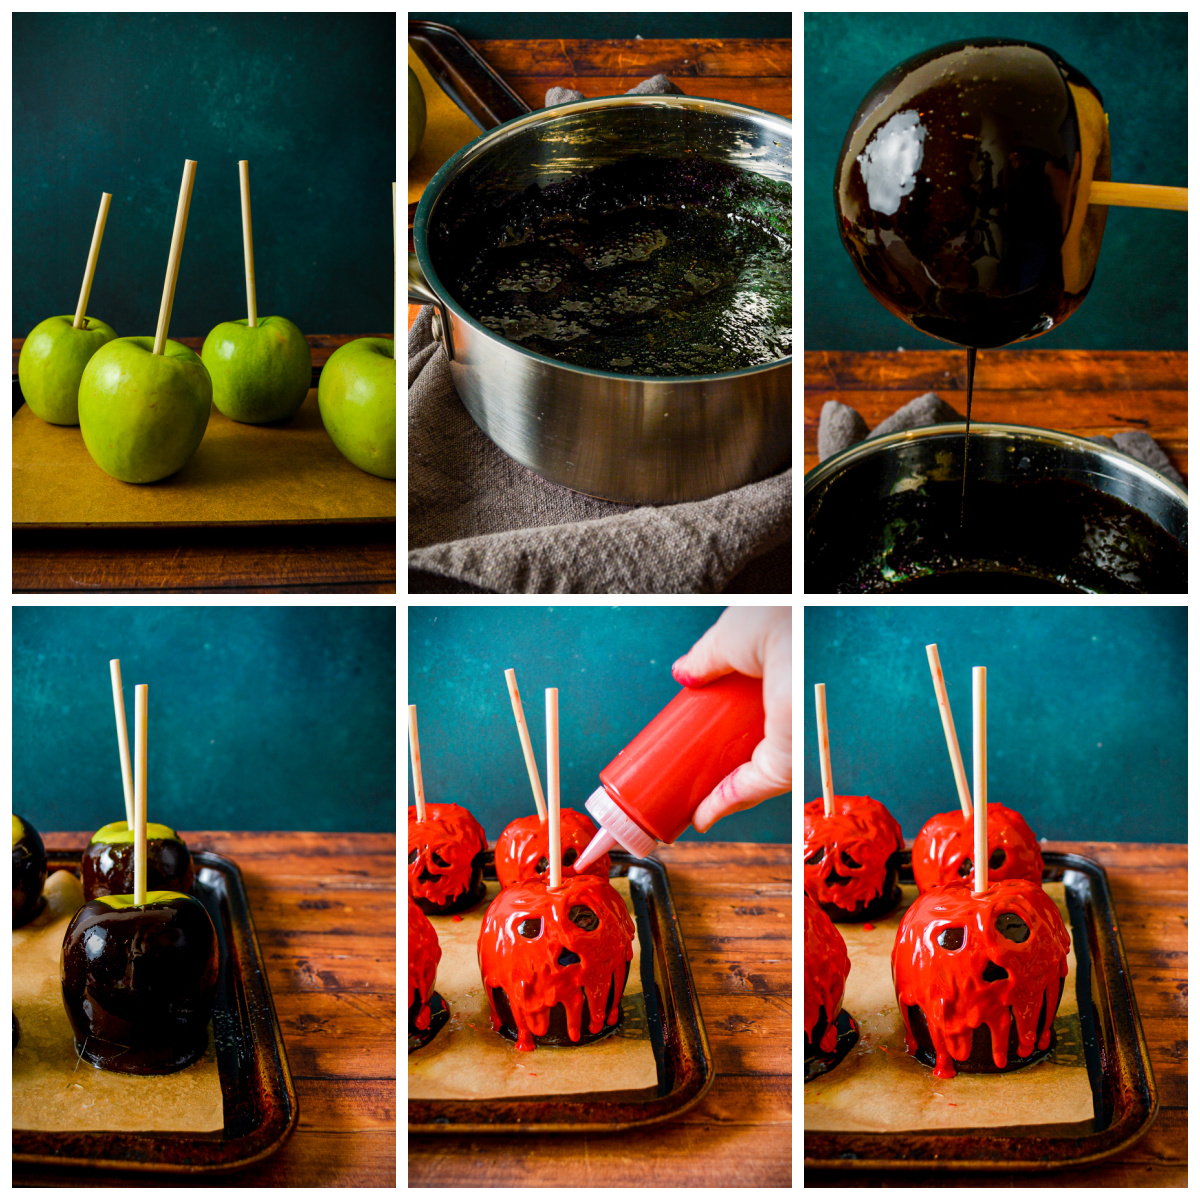 Step by step photos on how to make Poison Apples.